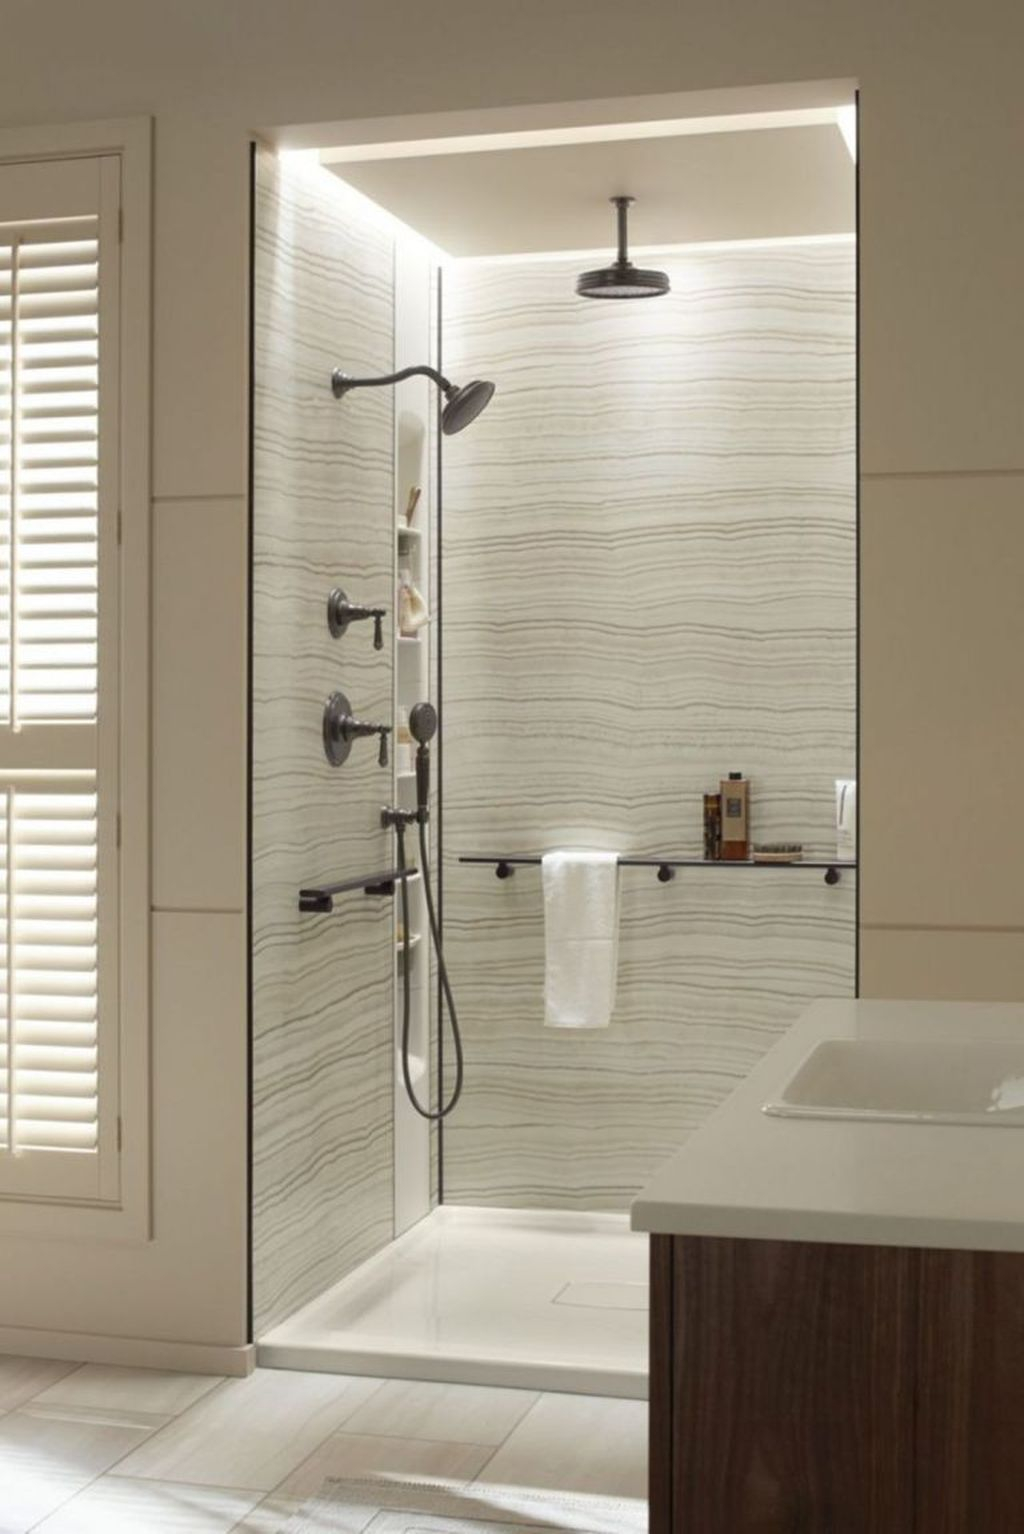 Cute Remodel Shower Design Ideas To Rock This Season 34